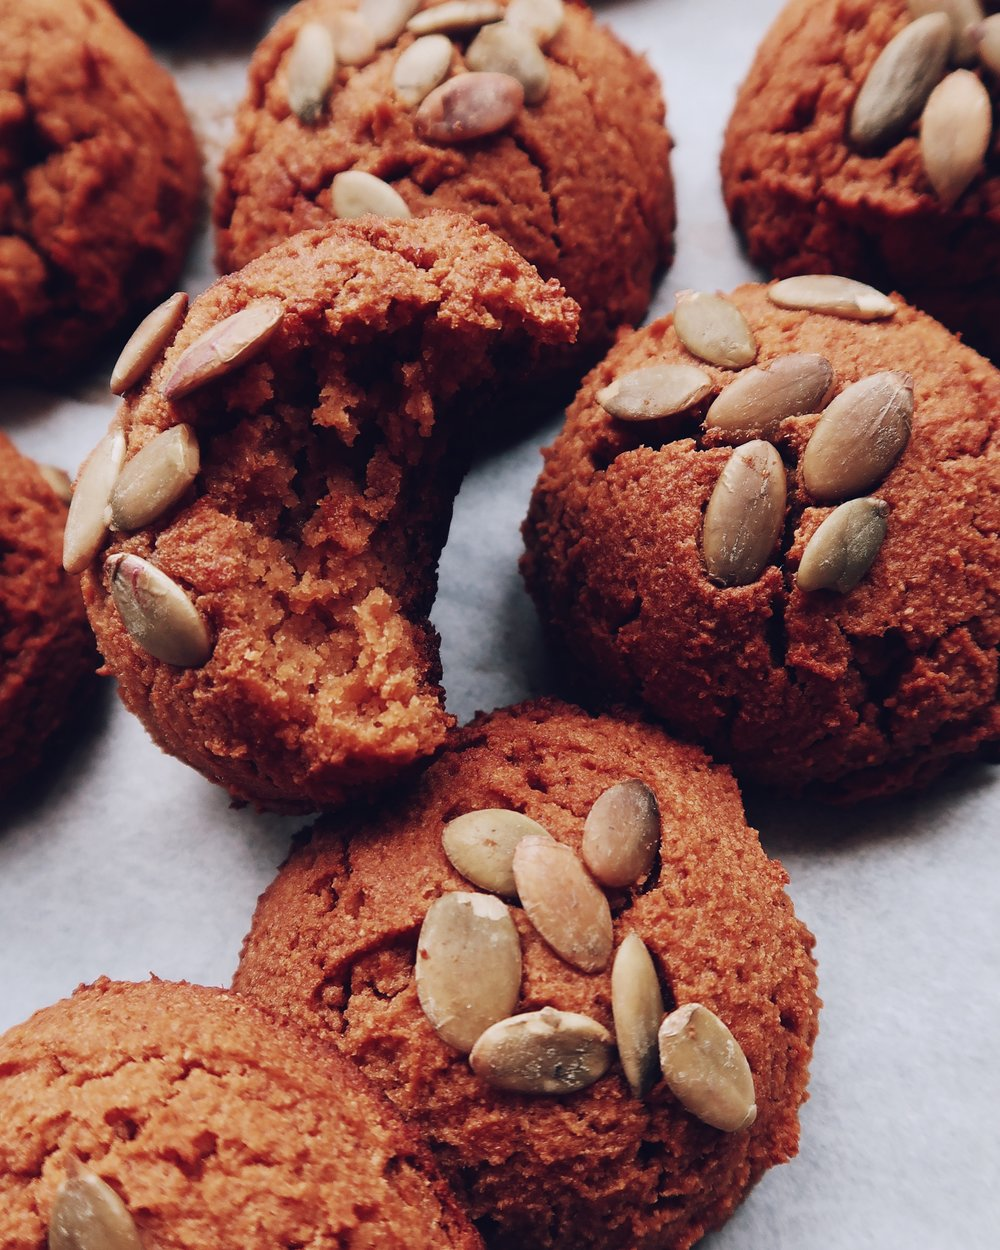 SWEET POTATO PILLOW COOKIES - INGREDIENTS1 1/2 cups mashed sweet potato (this is approx 2 small sweet potatoes)1/2 cup coconut flour 1/4 cup maple syrup1/4 cup melted coconut oil 1/4 cup Bonafide Provisions bone broth3 eggs1/4 tsp salt2 tsp cinnamon1/4 tsp nutmeg1 tsp baking sodapumpkin seeds to sprinkle on top